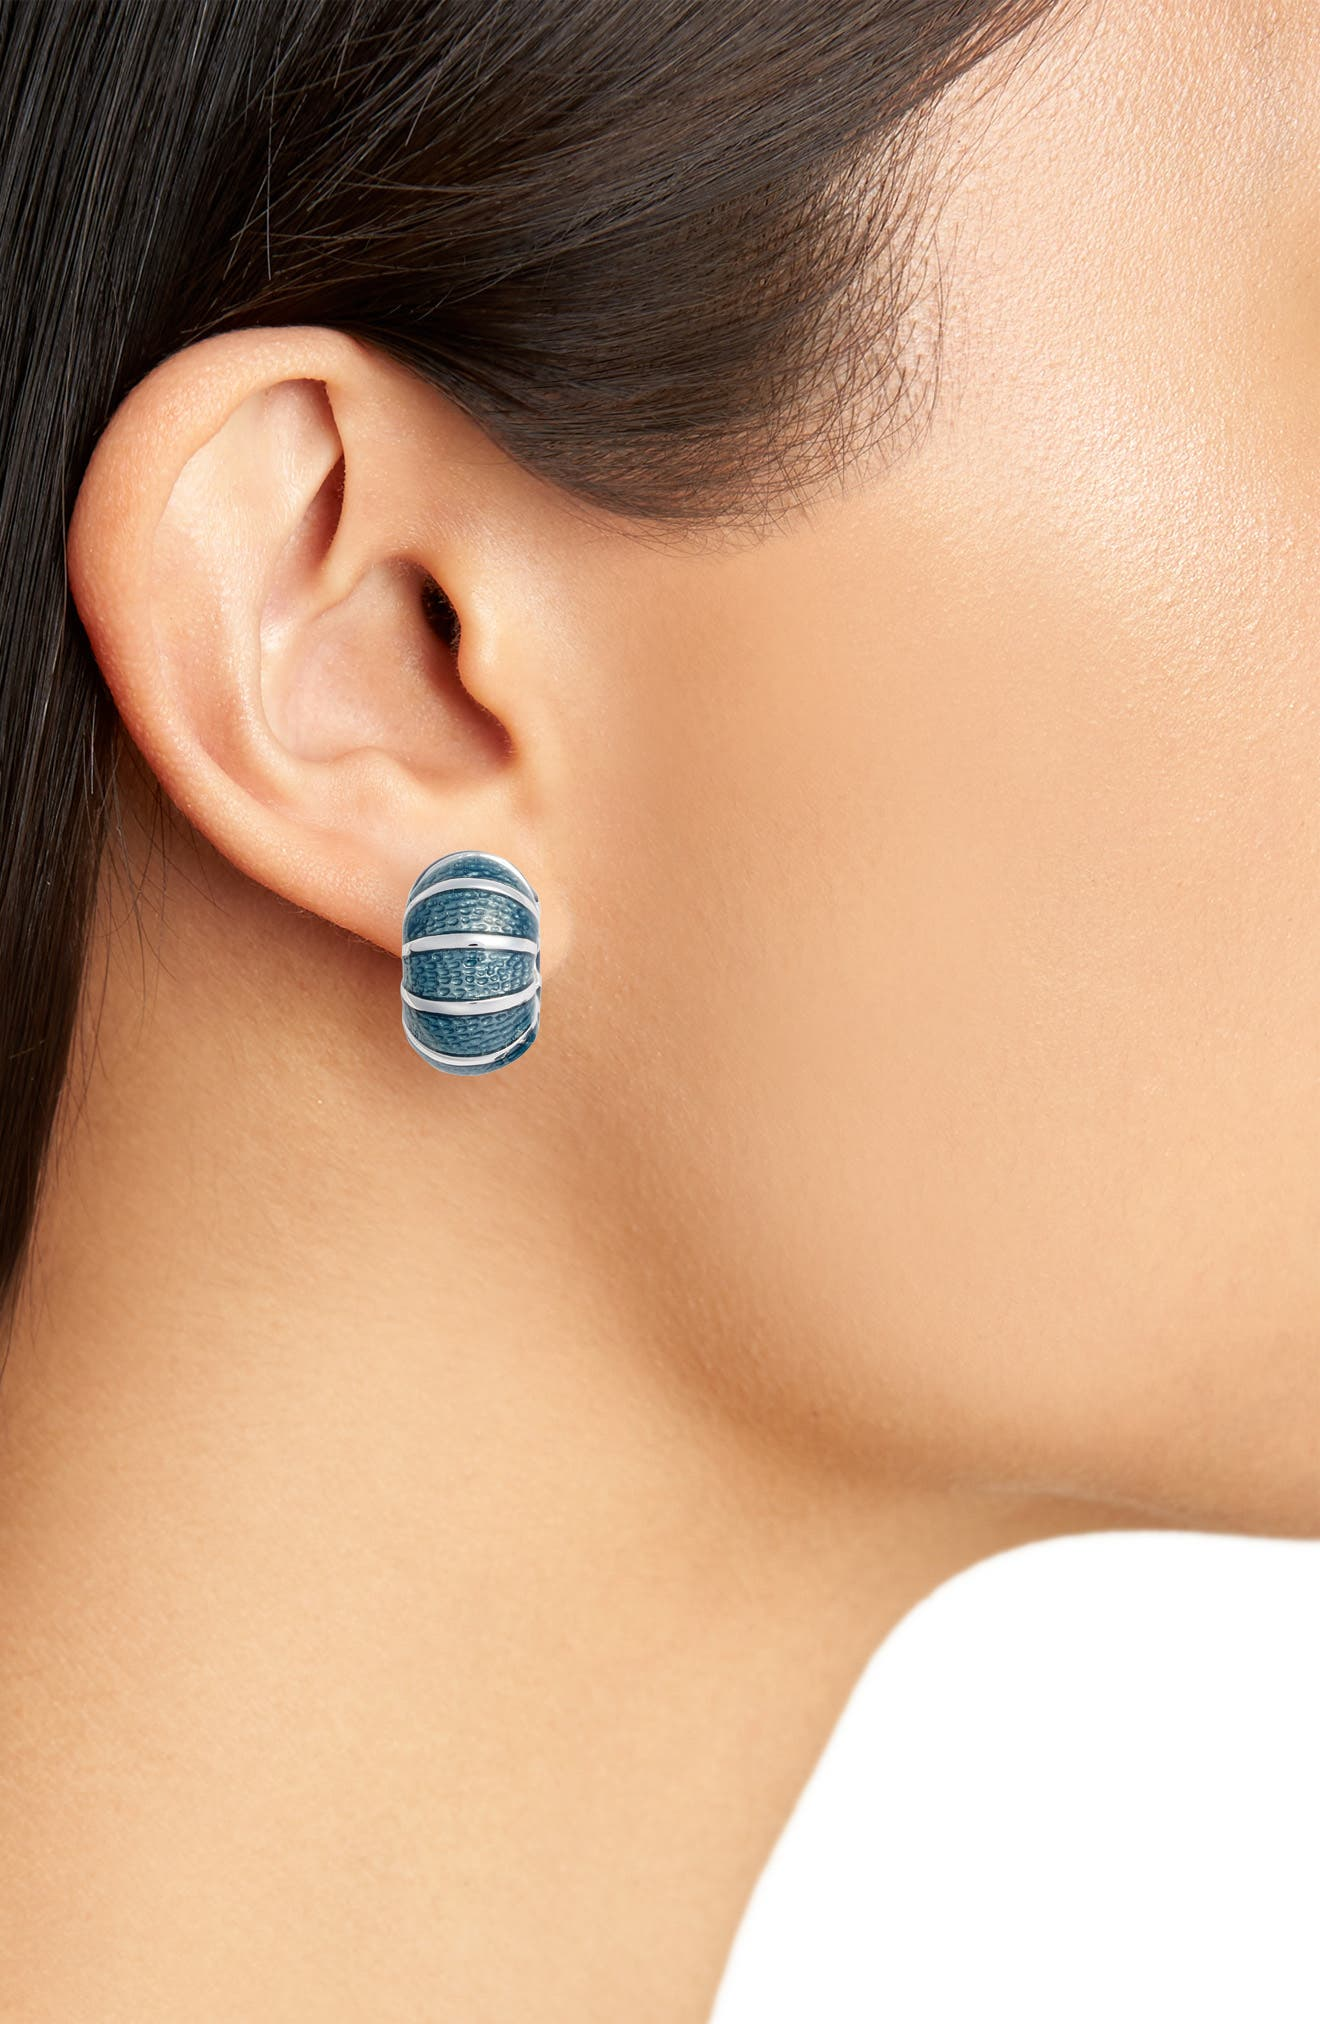 Blue Segmented Pier Earrings,                             Alternate thumbnail 2, color,                             BLUE